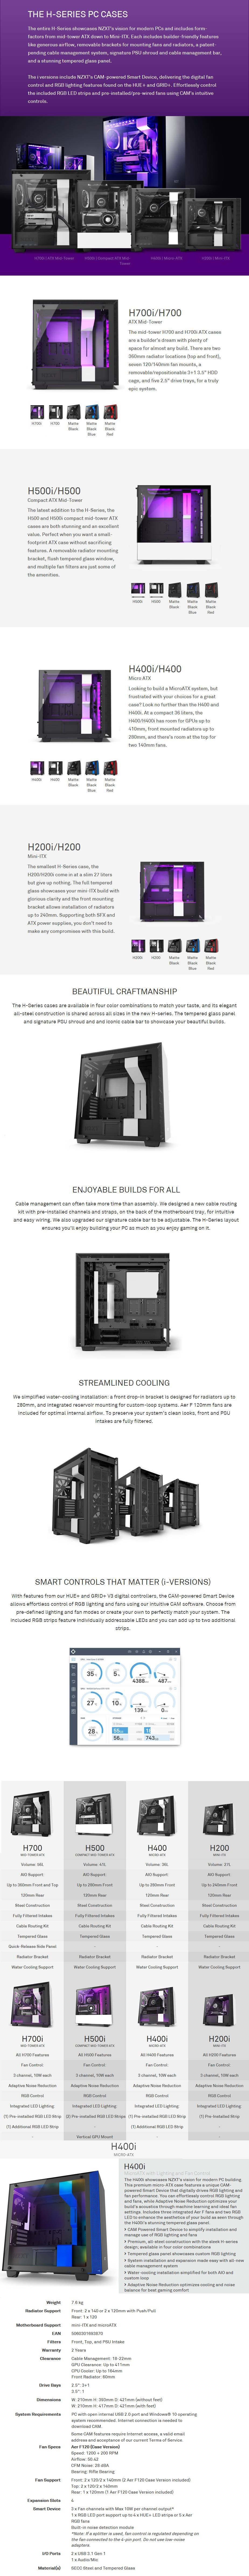 NZXT H400i Smart Tempered Glass Mid-Tower Micro-ATX Case - Matte Black/Blue - Desktop Overview 1